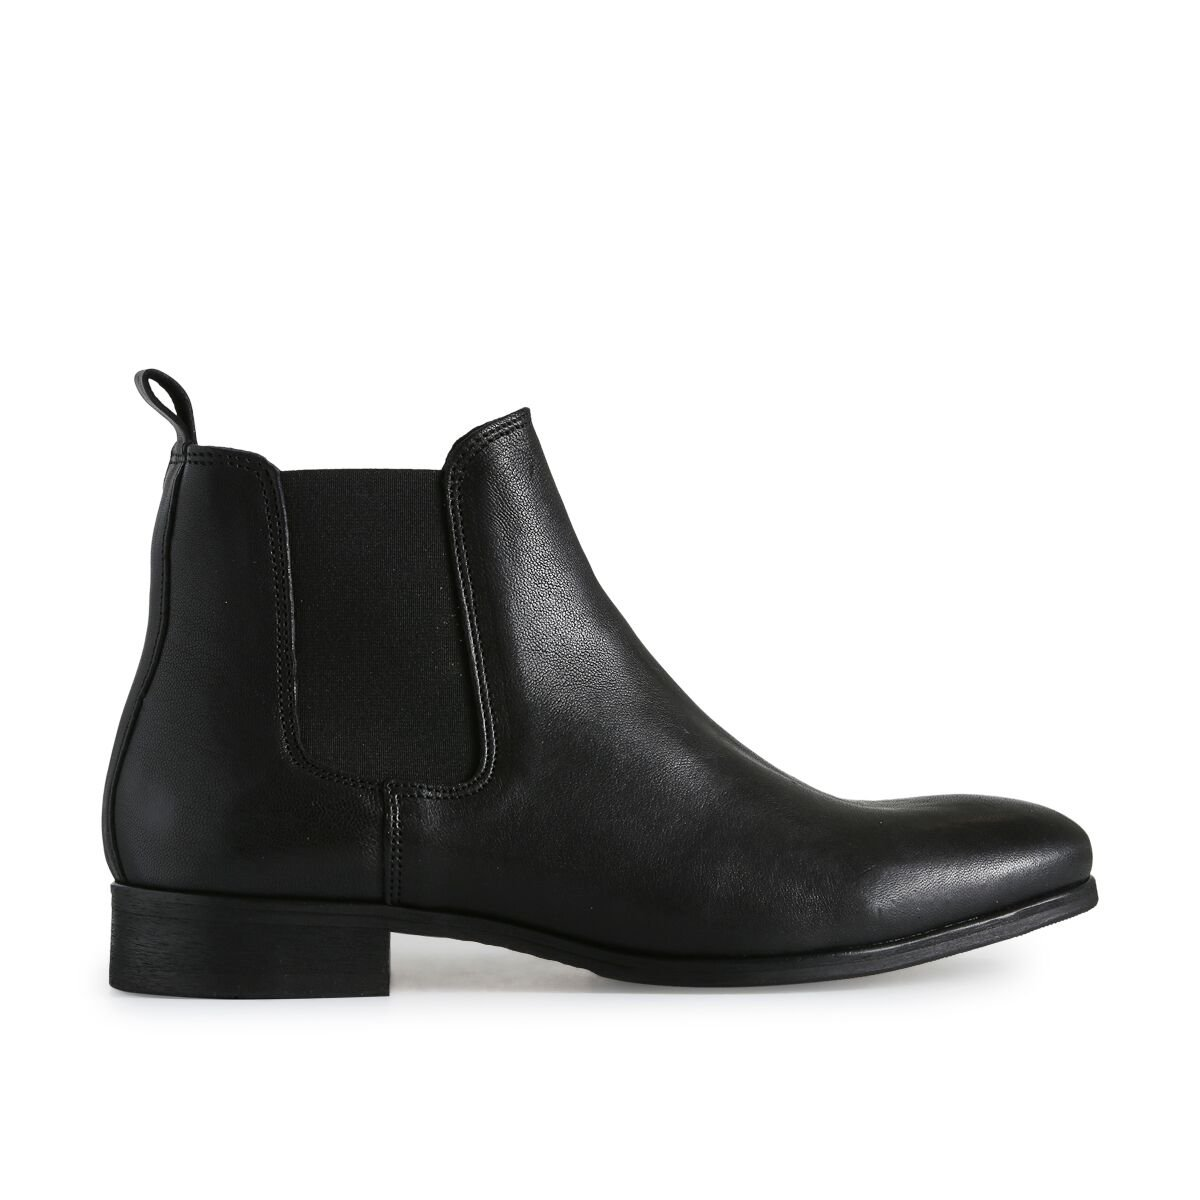 SHOE THE BEAR Arnie L, Botas Chelsea para Hombre